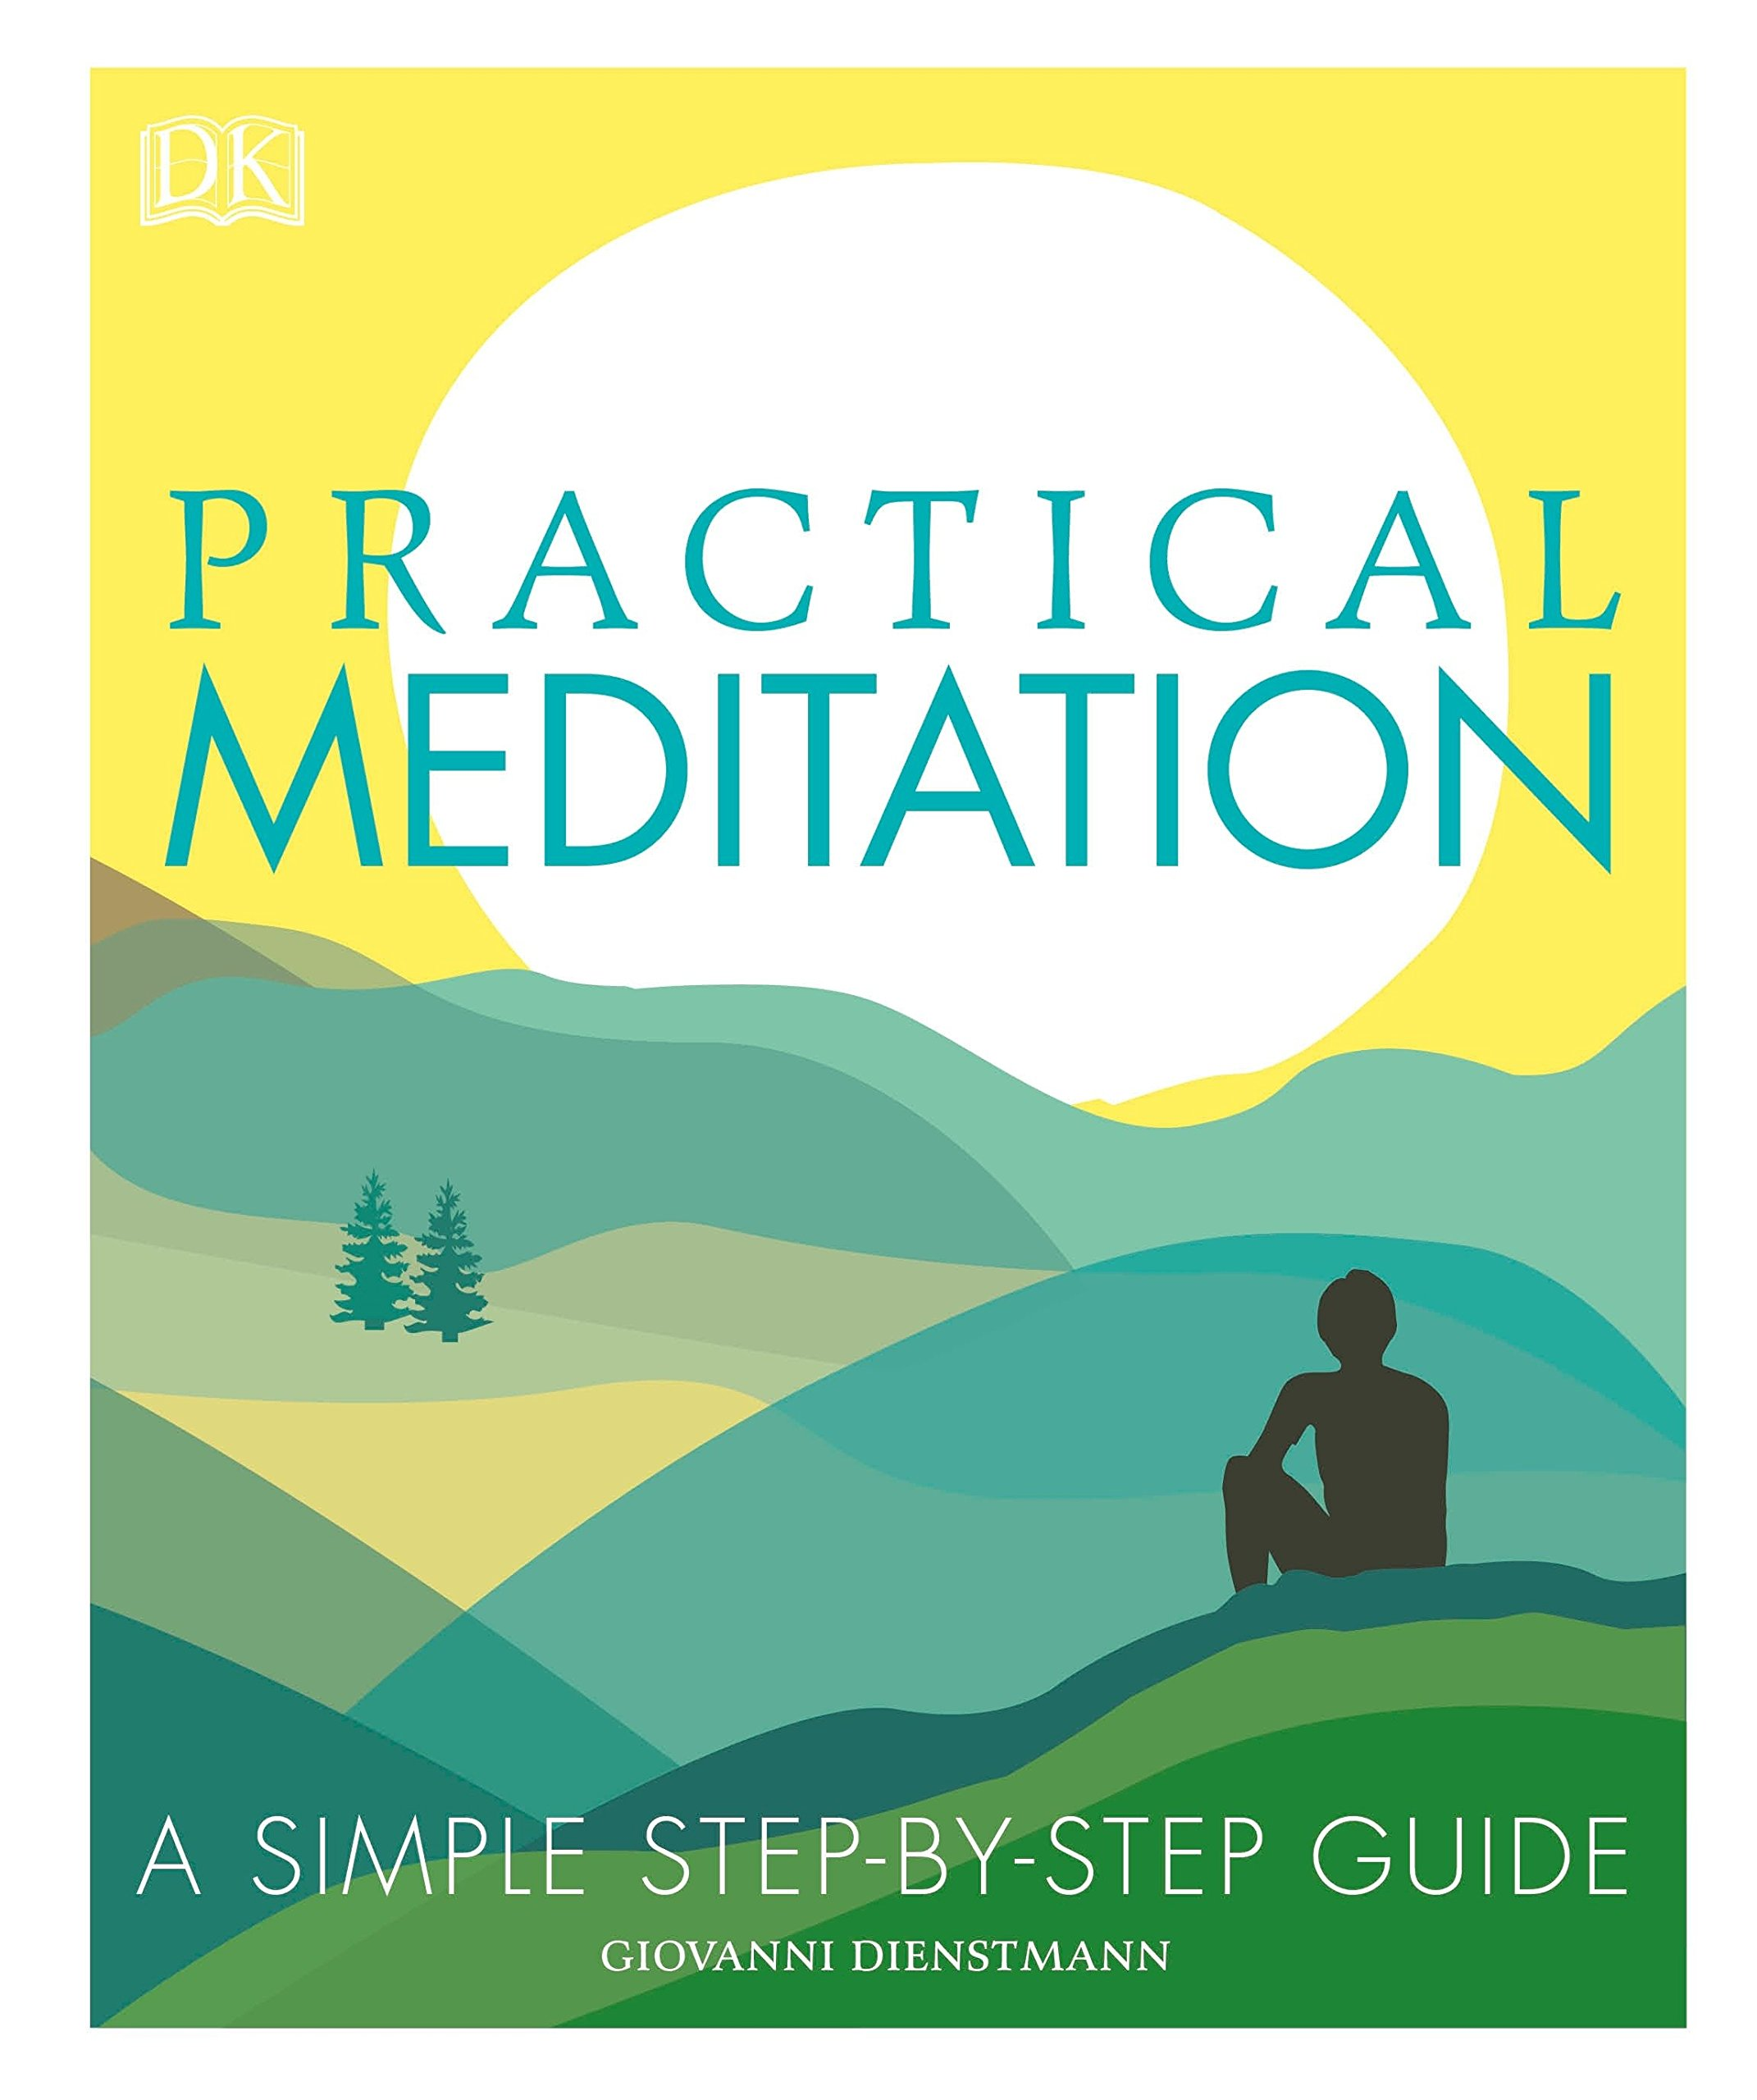 Amazon.com: Practical Meditation: A Simple Step-by-Step Guide ...